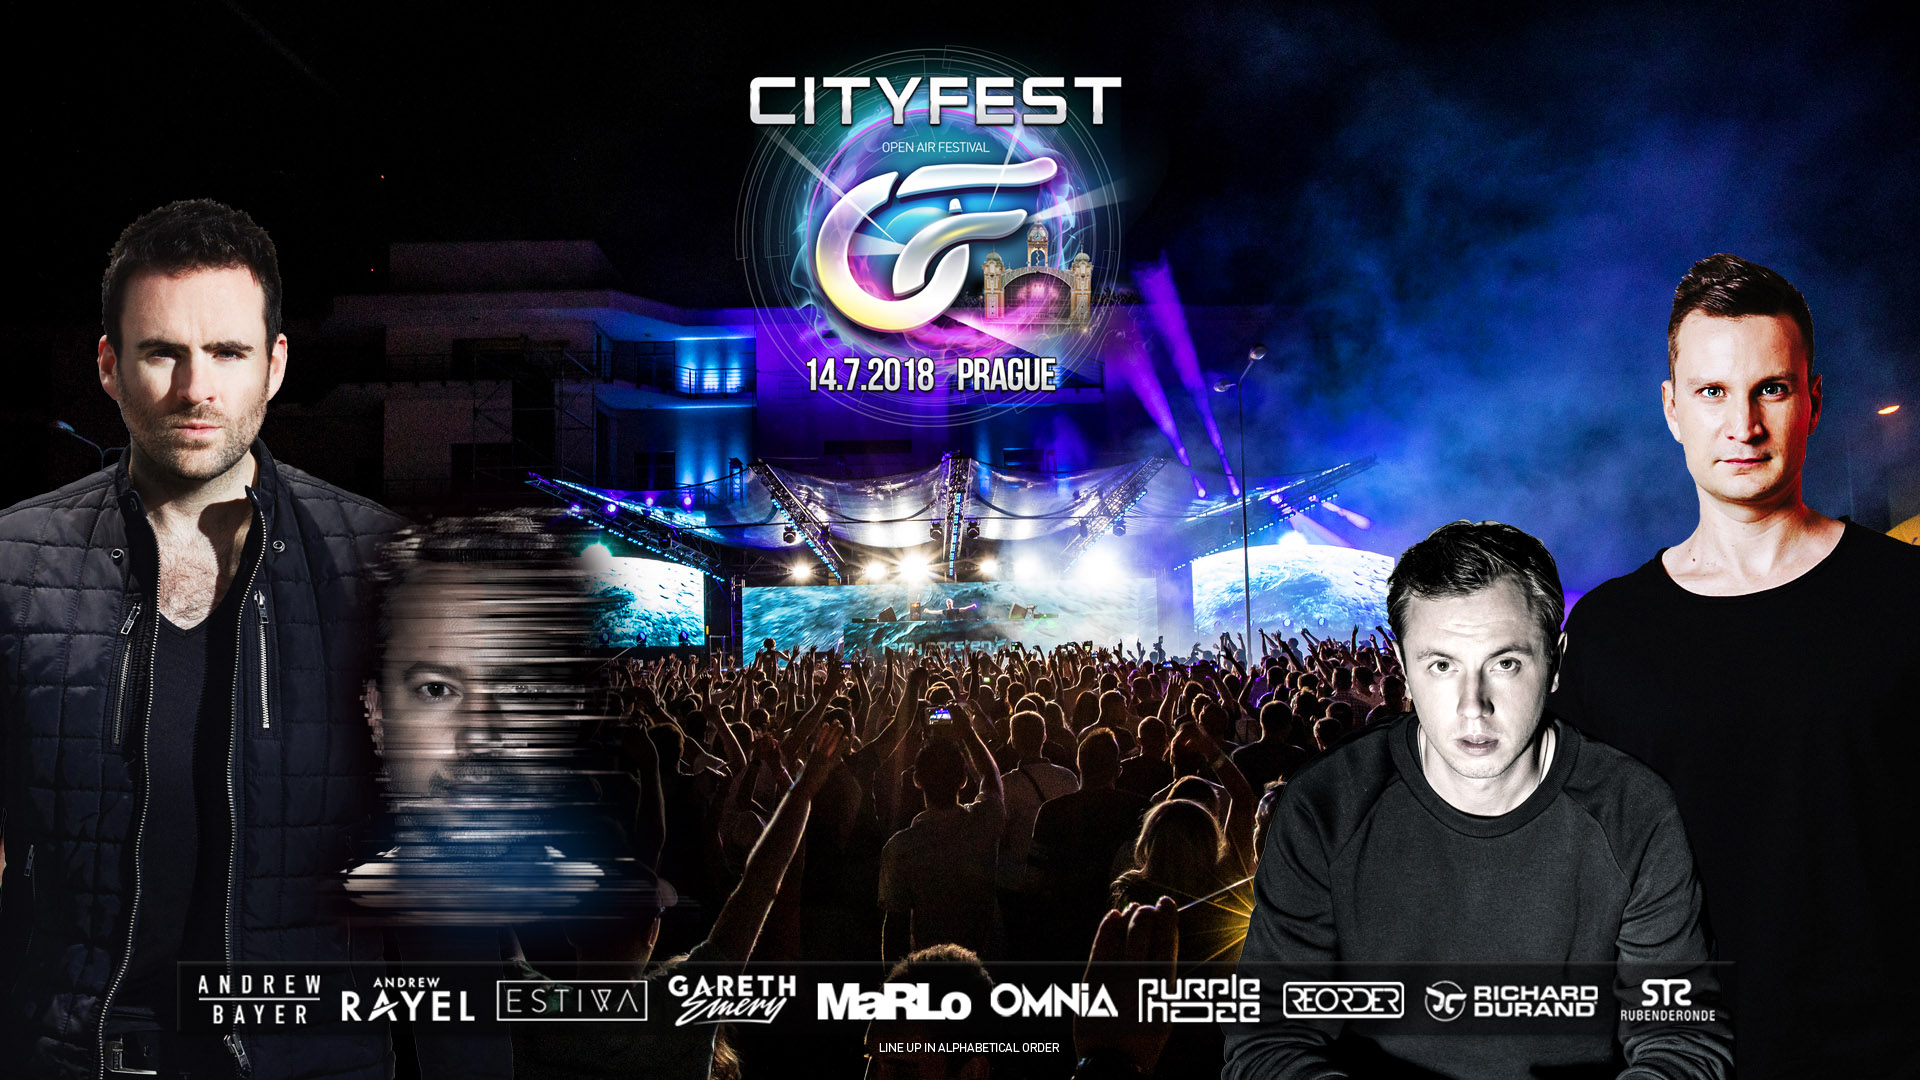 World trance & progressive stars head to CityFest!